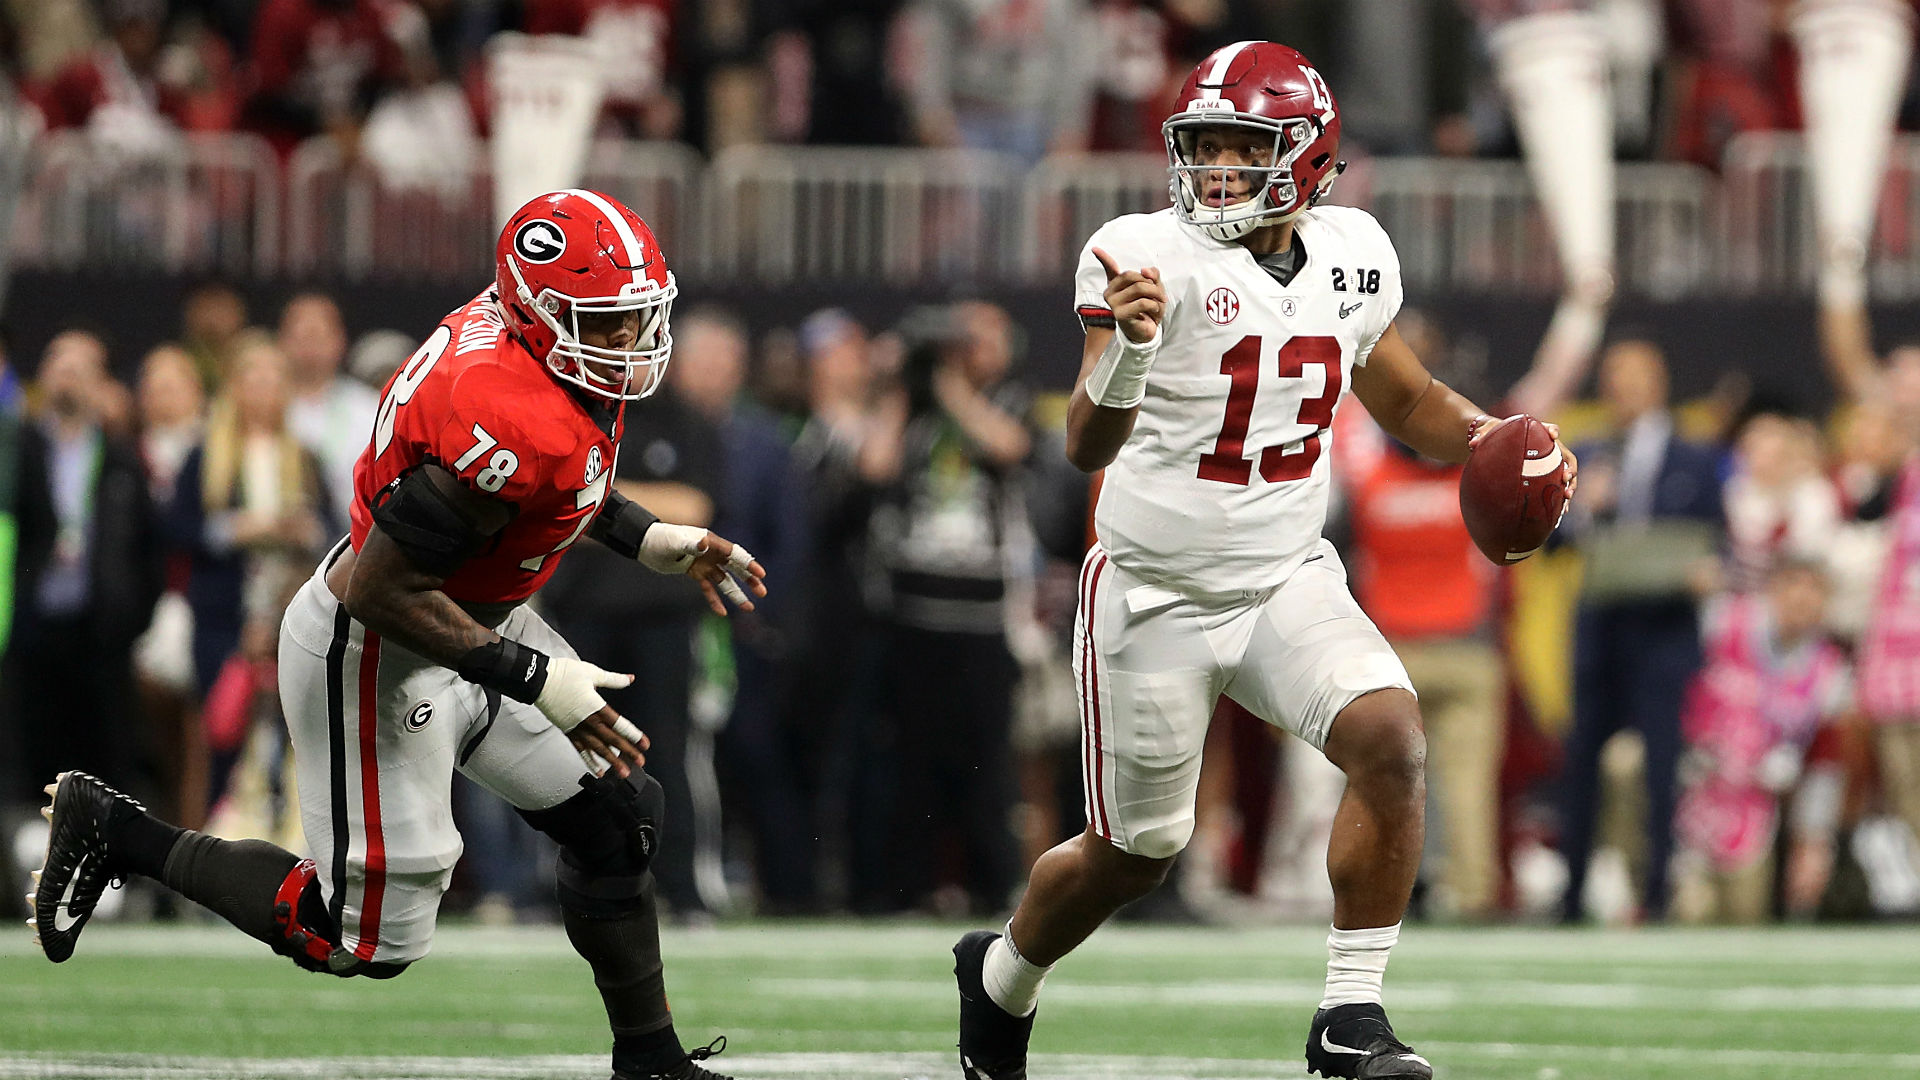 Jalen Hurts showed true spirit